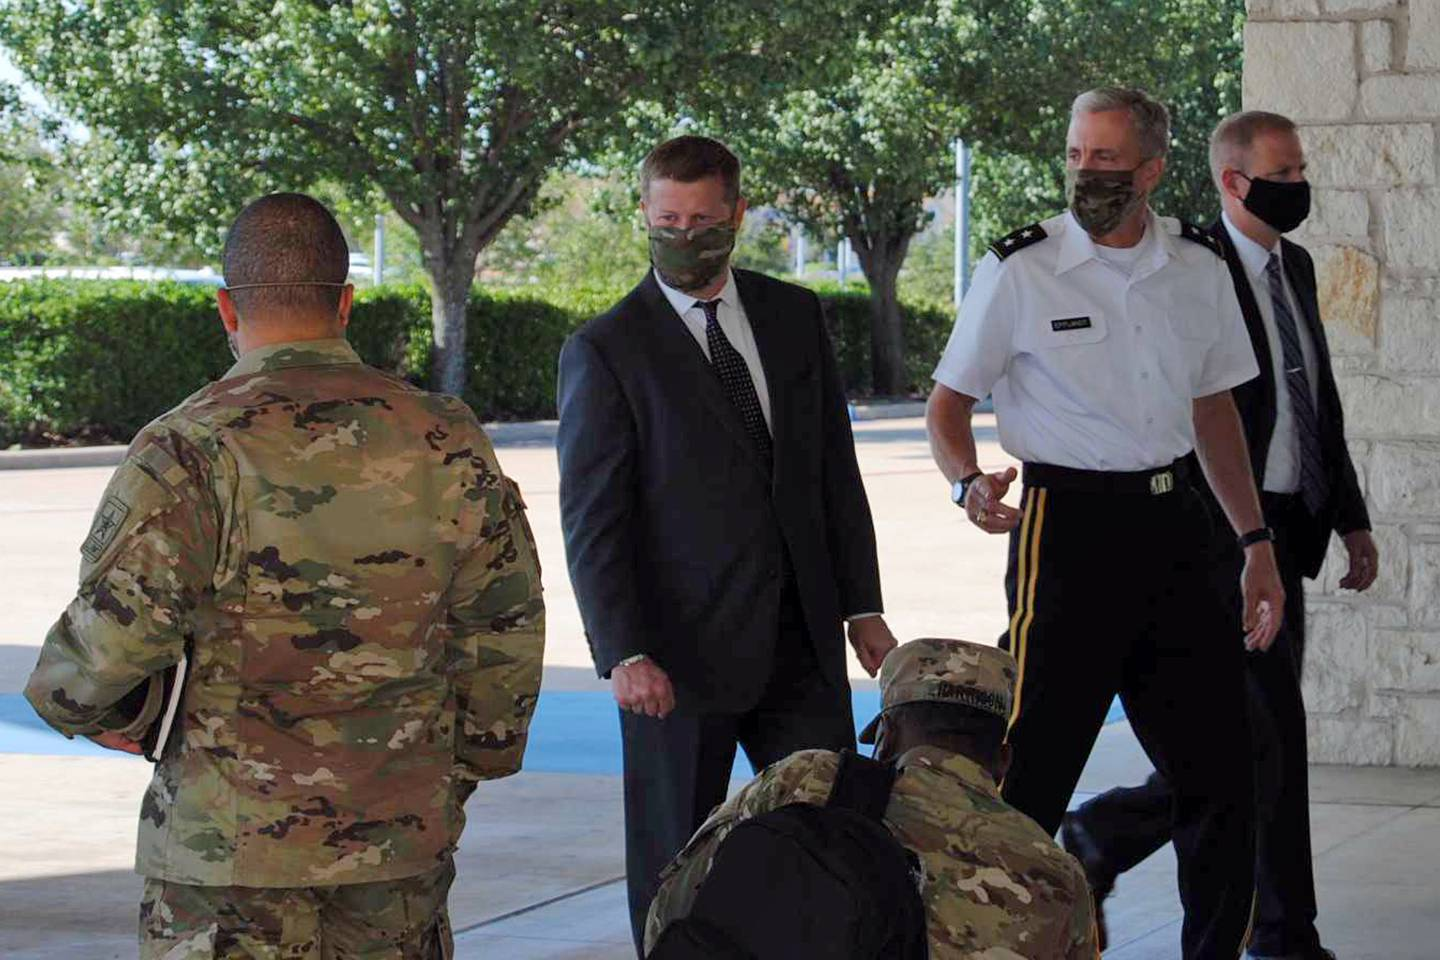 Secretary of the Army Ryan McCarthy, center, into the Killeen Civic and Conference Center on Aug. 6, 2020, ahead of a meeting with local officials in Killeen, Texas.